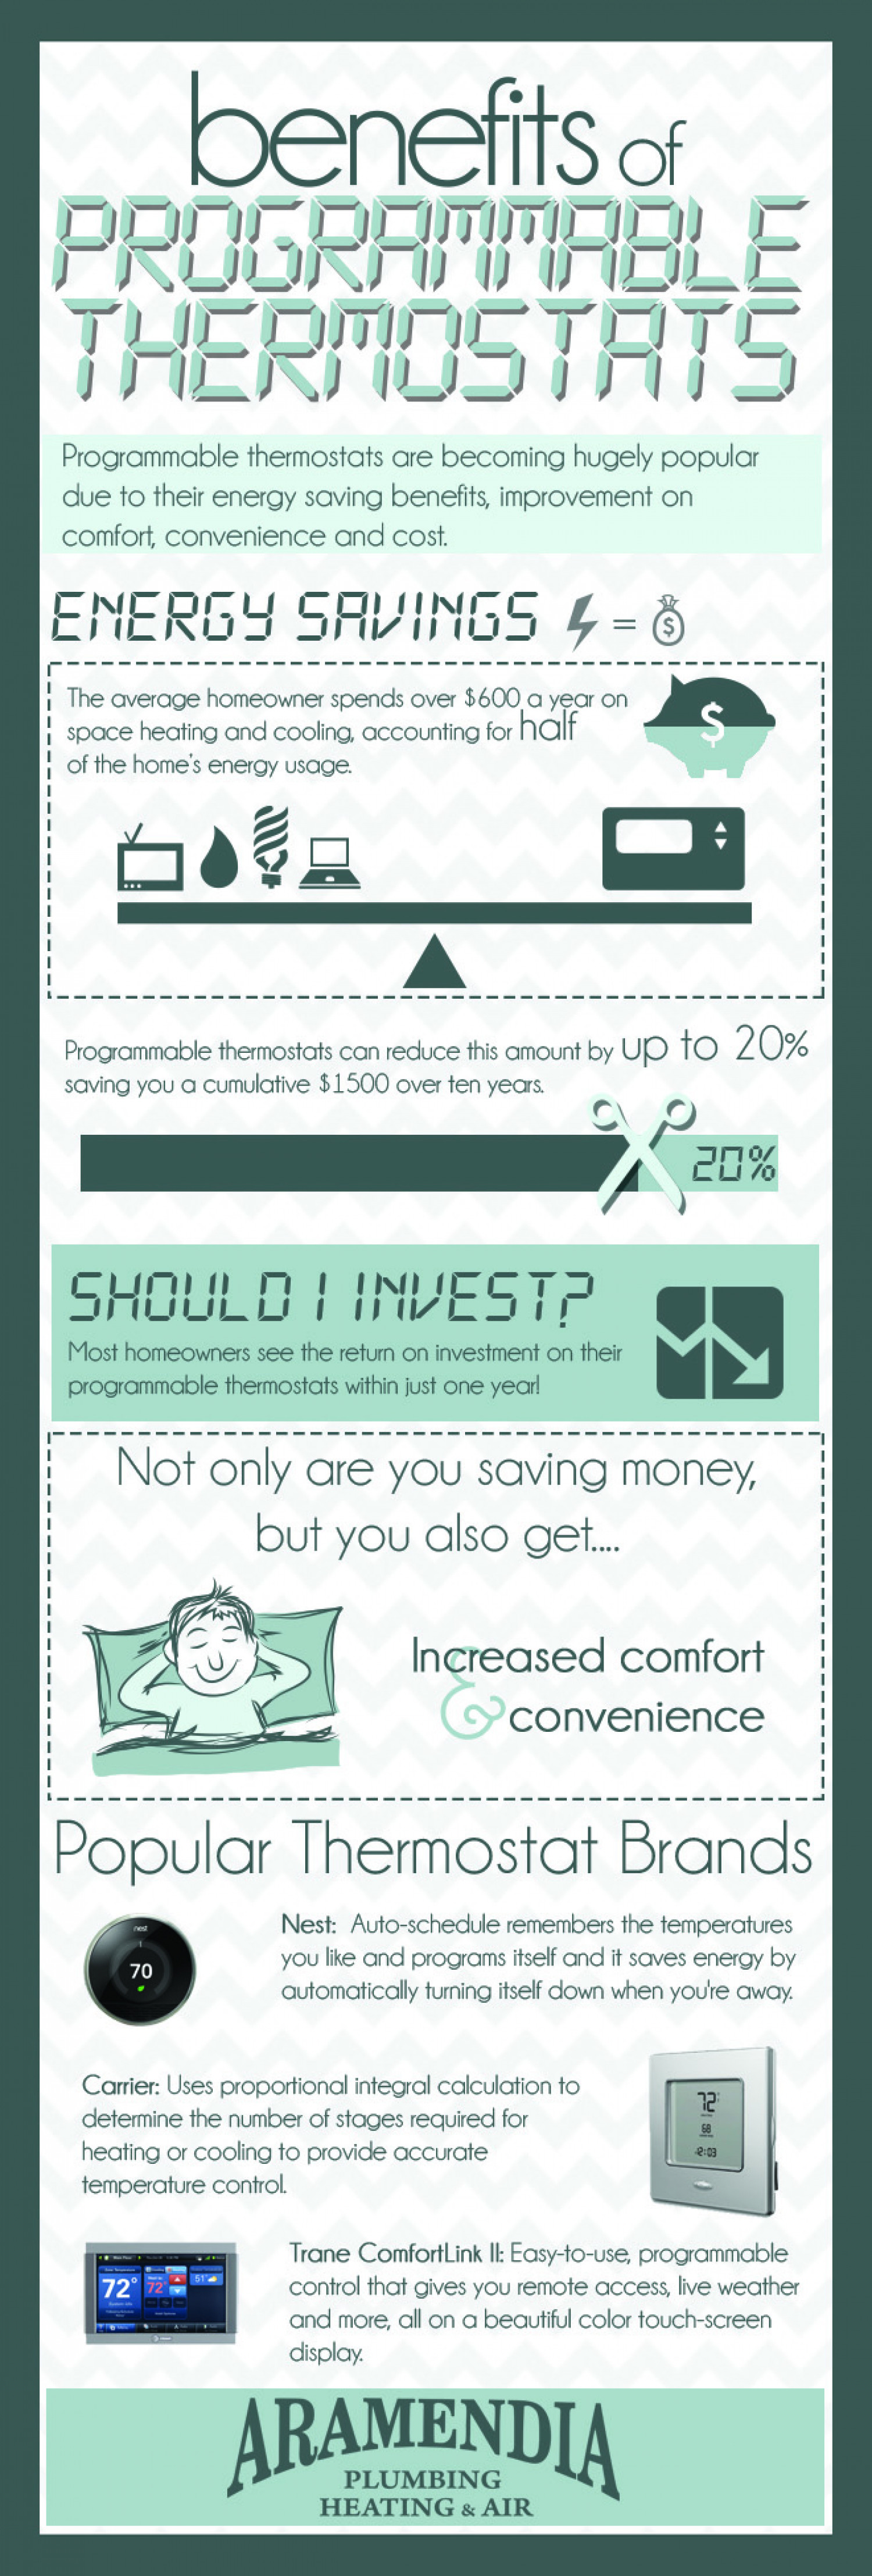 The Benefits of Programmable Thermostats Infographic